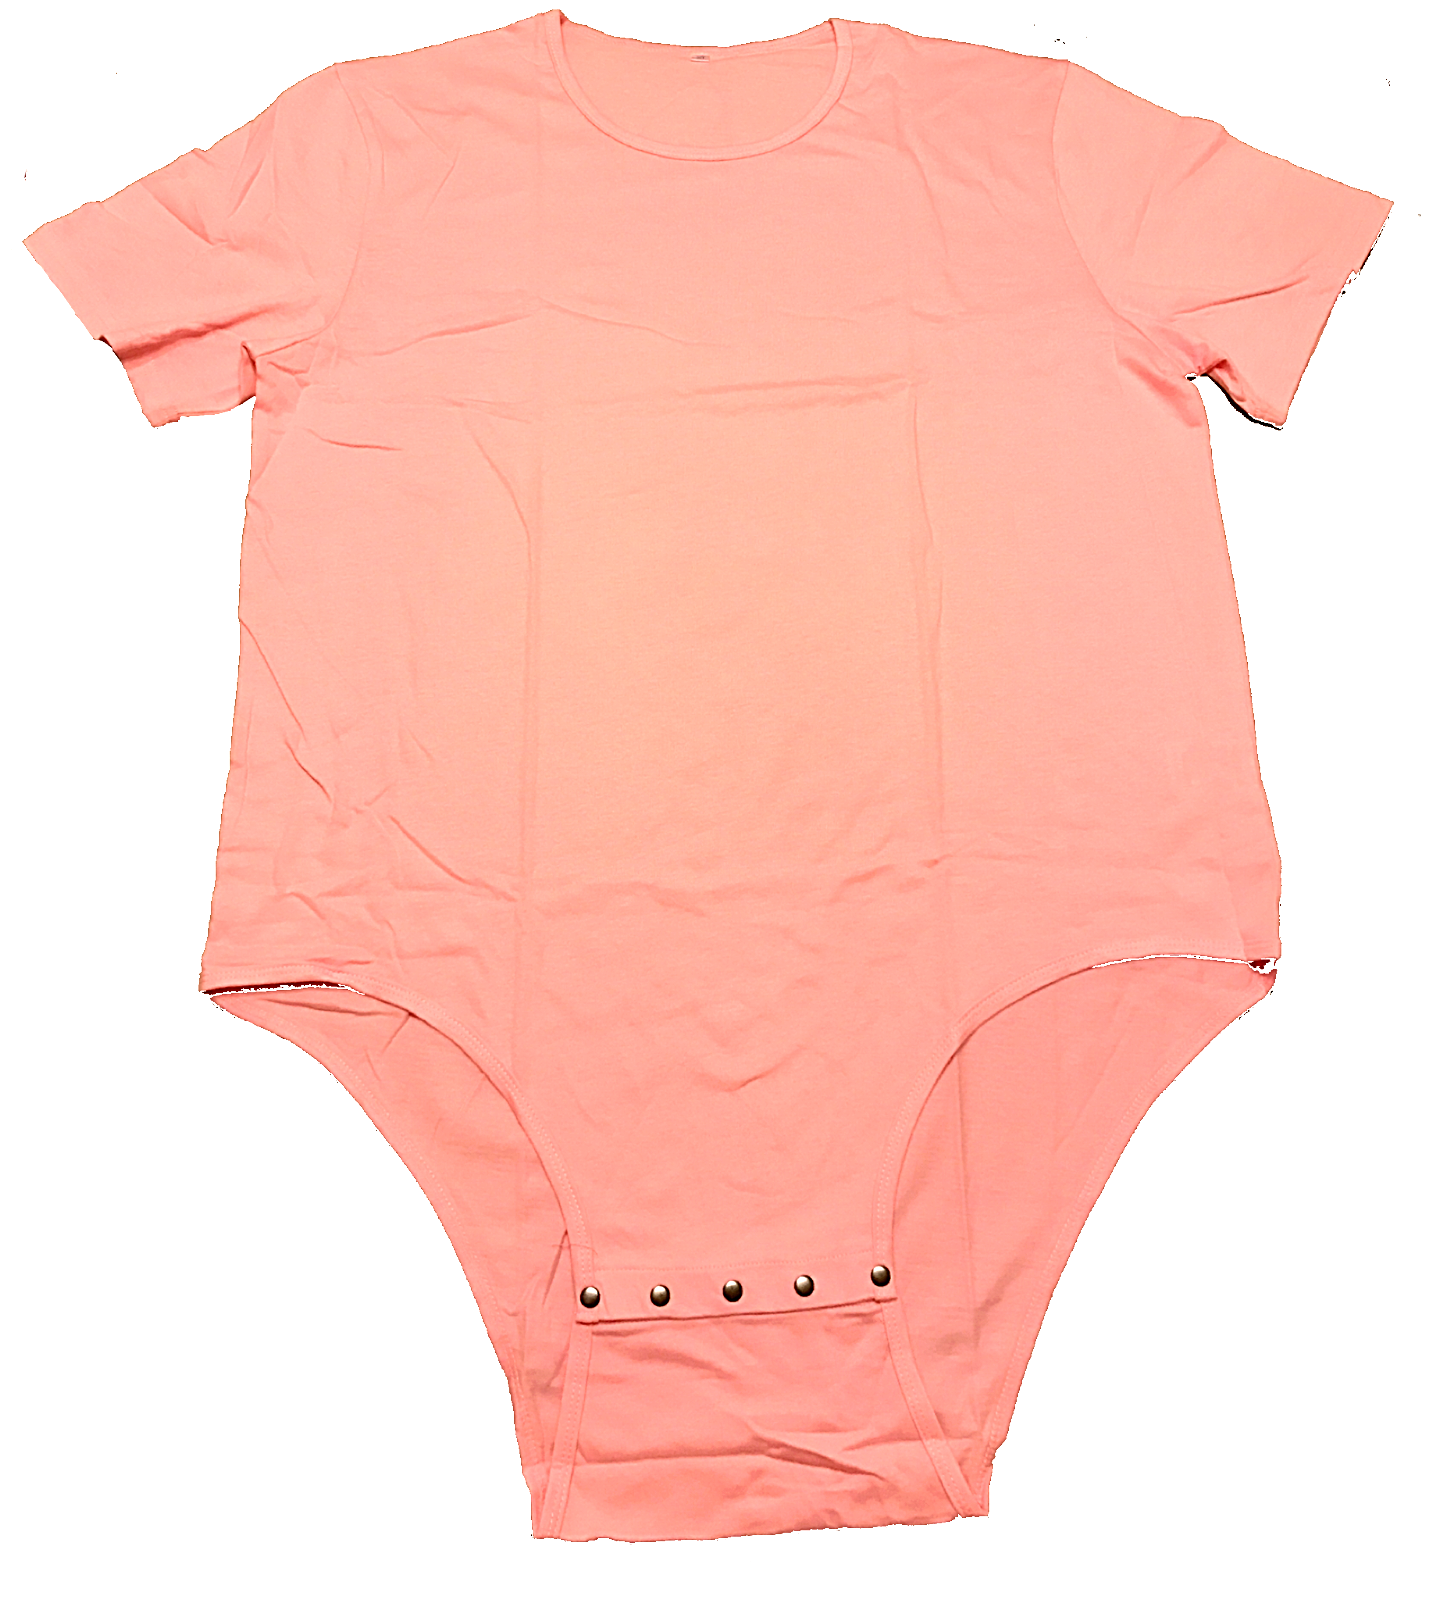 35926a6320 Adult Romper Onesie Snap Crotch in Pink on Storenvy